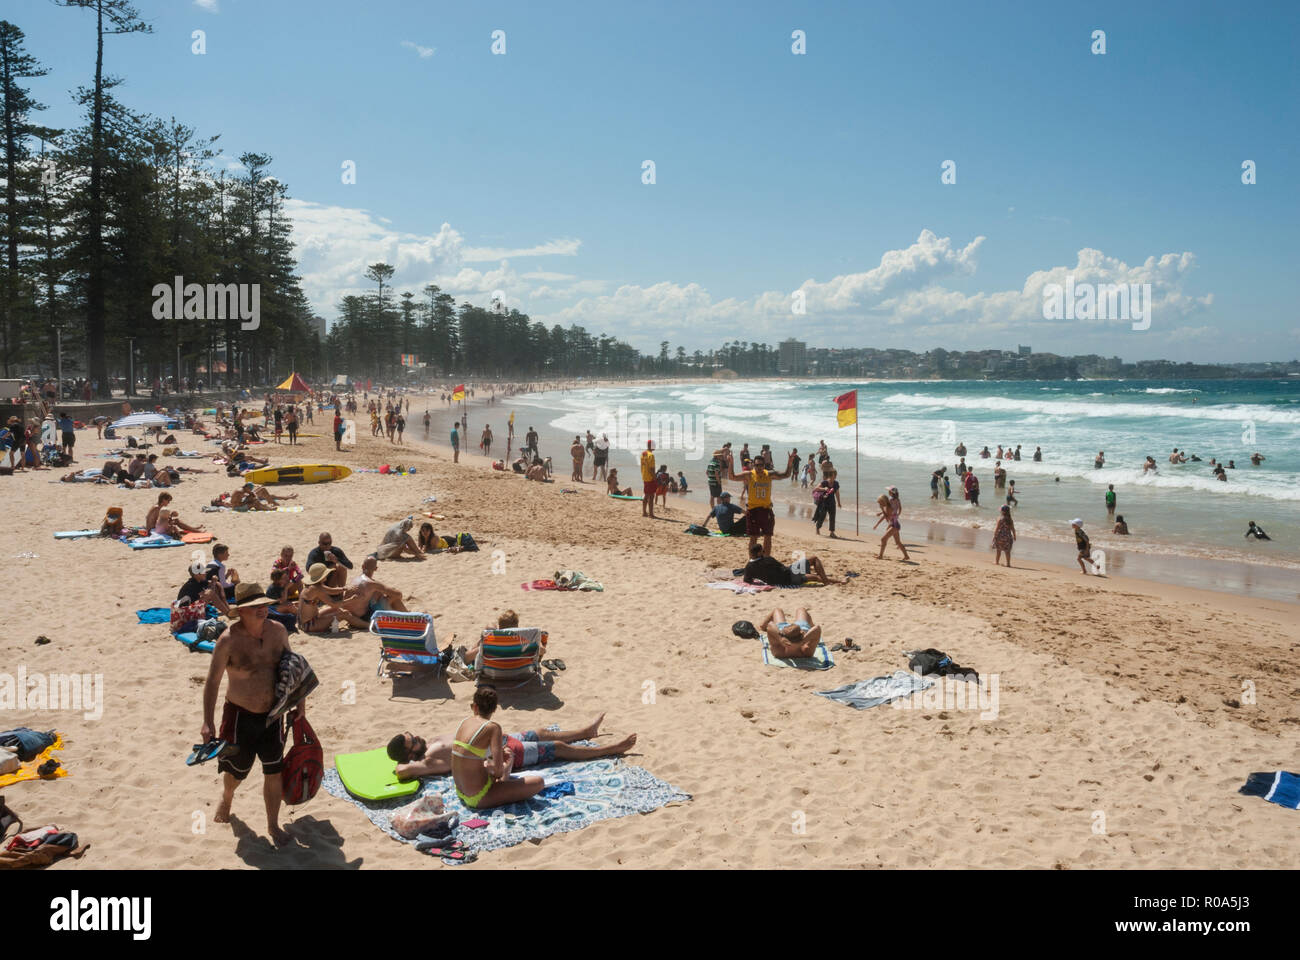 View along the golden sands of Manly Beach, Sydney, Australia with holidaymakers sunbathing, swimming and surfing in the spring sunshine. Stock Photo